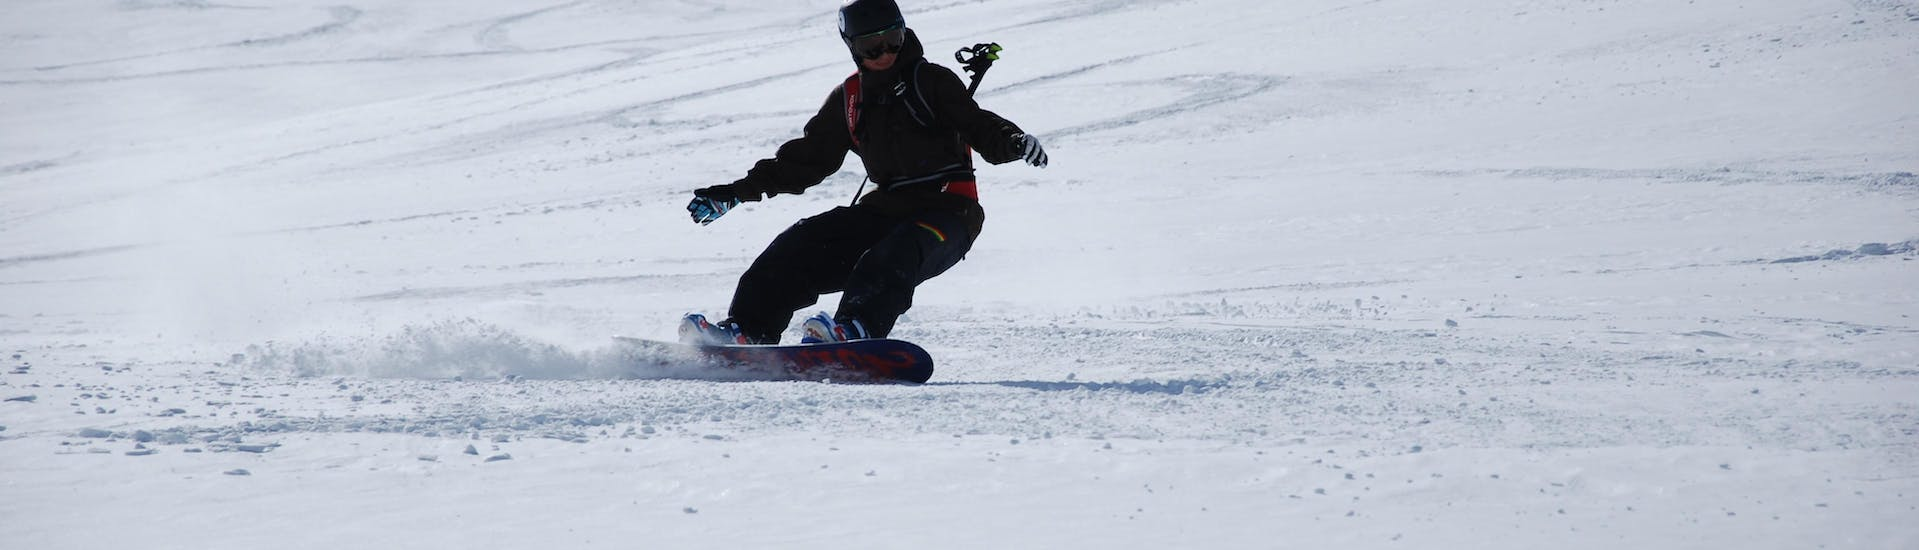 Snowboard Instructor Private - All Levels & Ages avec Skischule Gosau - Hero image